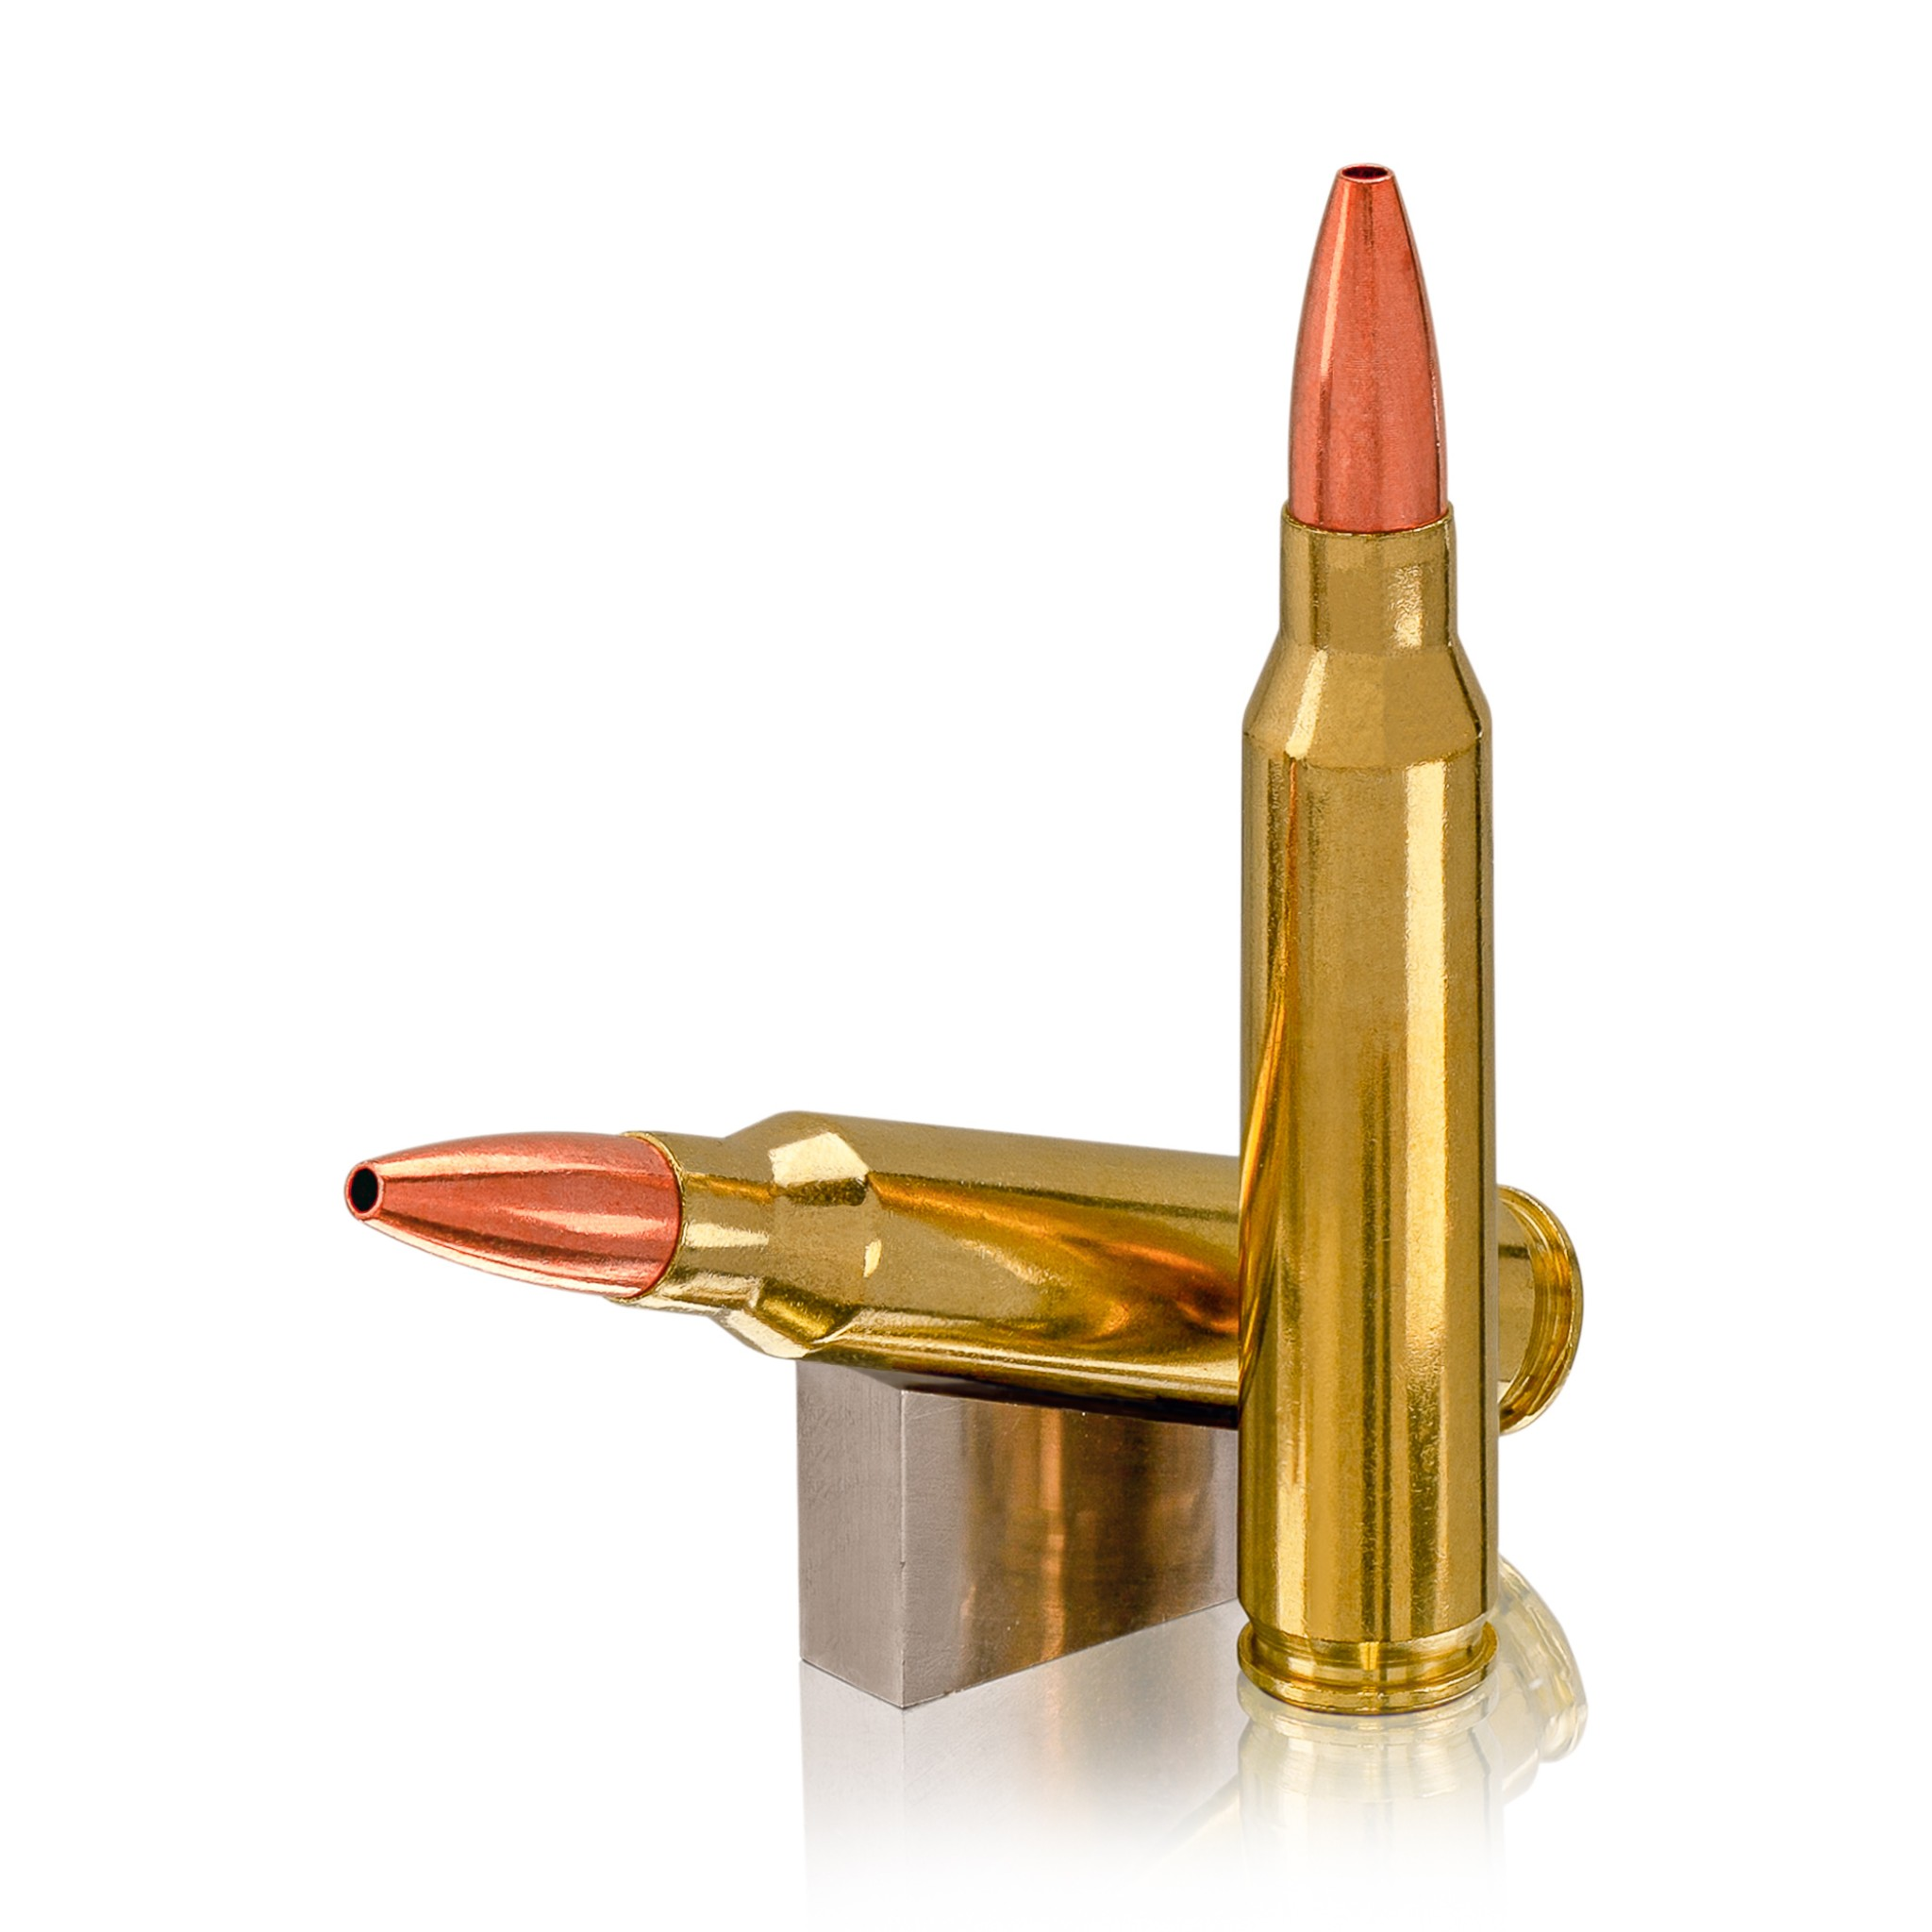 LEHIGH DEFENSE ADDS 5.56MM 62GR CONTROLLED CHAOS BULLET LOADED IN LAKE CITY BRASS TO LINE UP